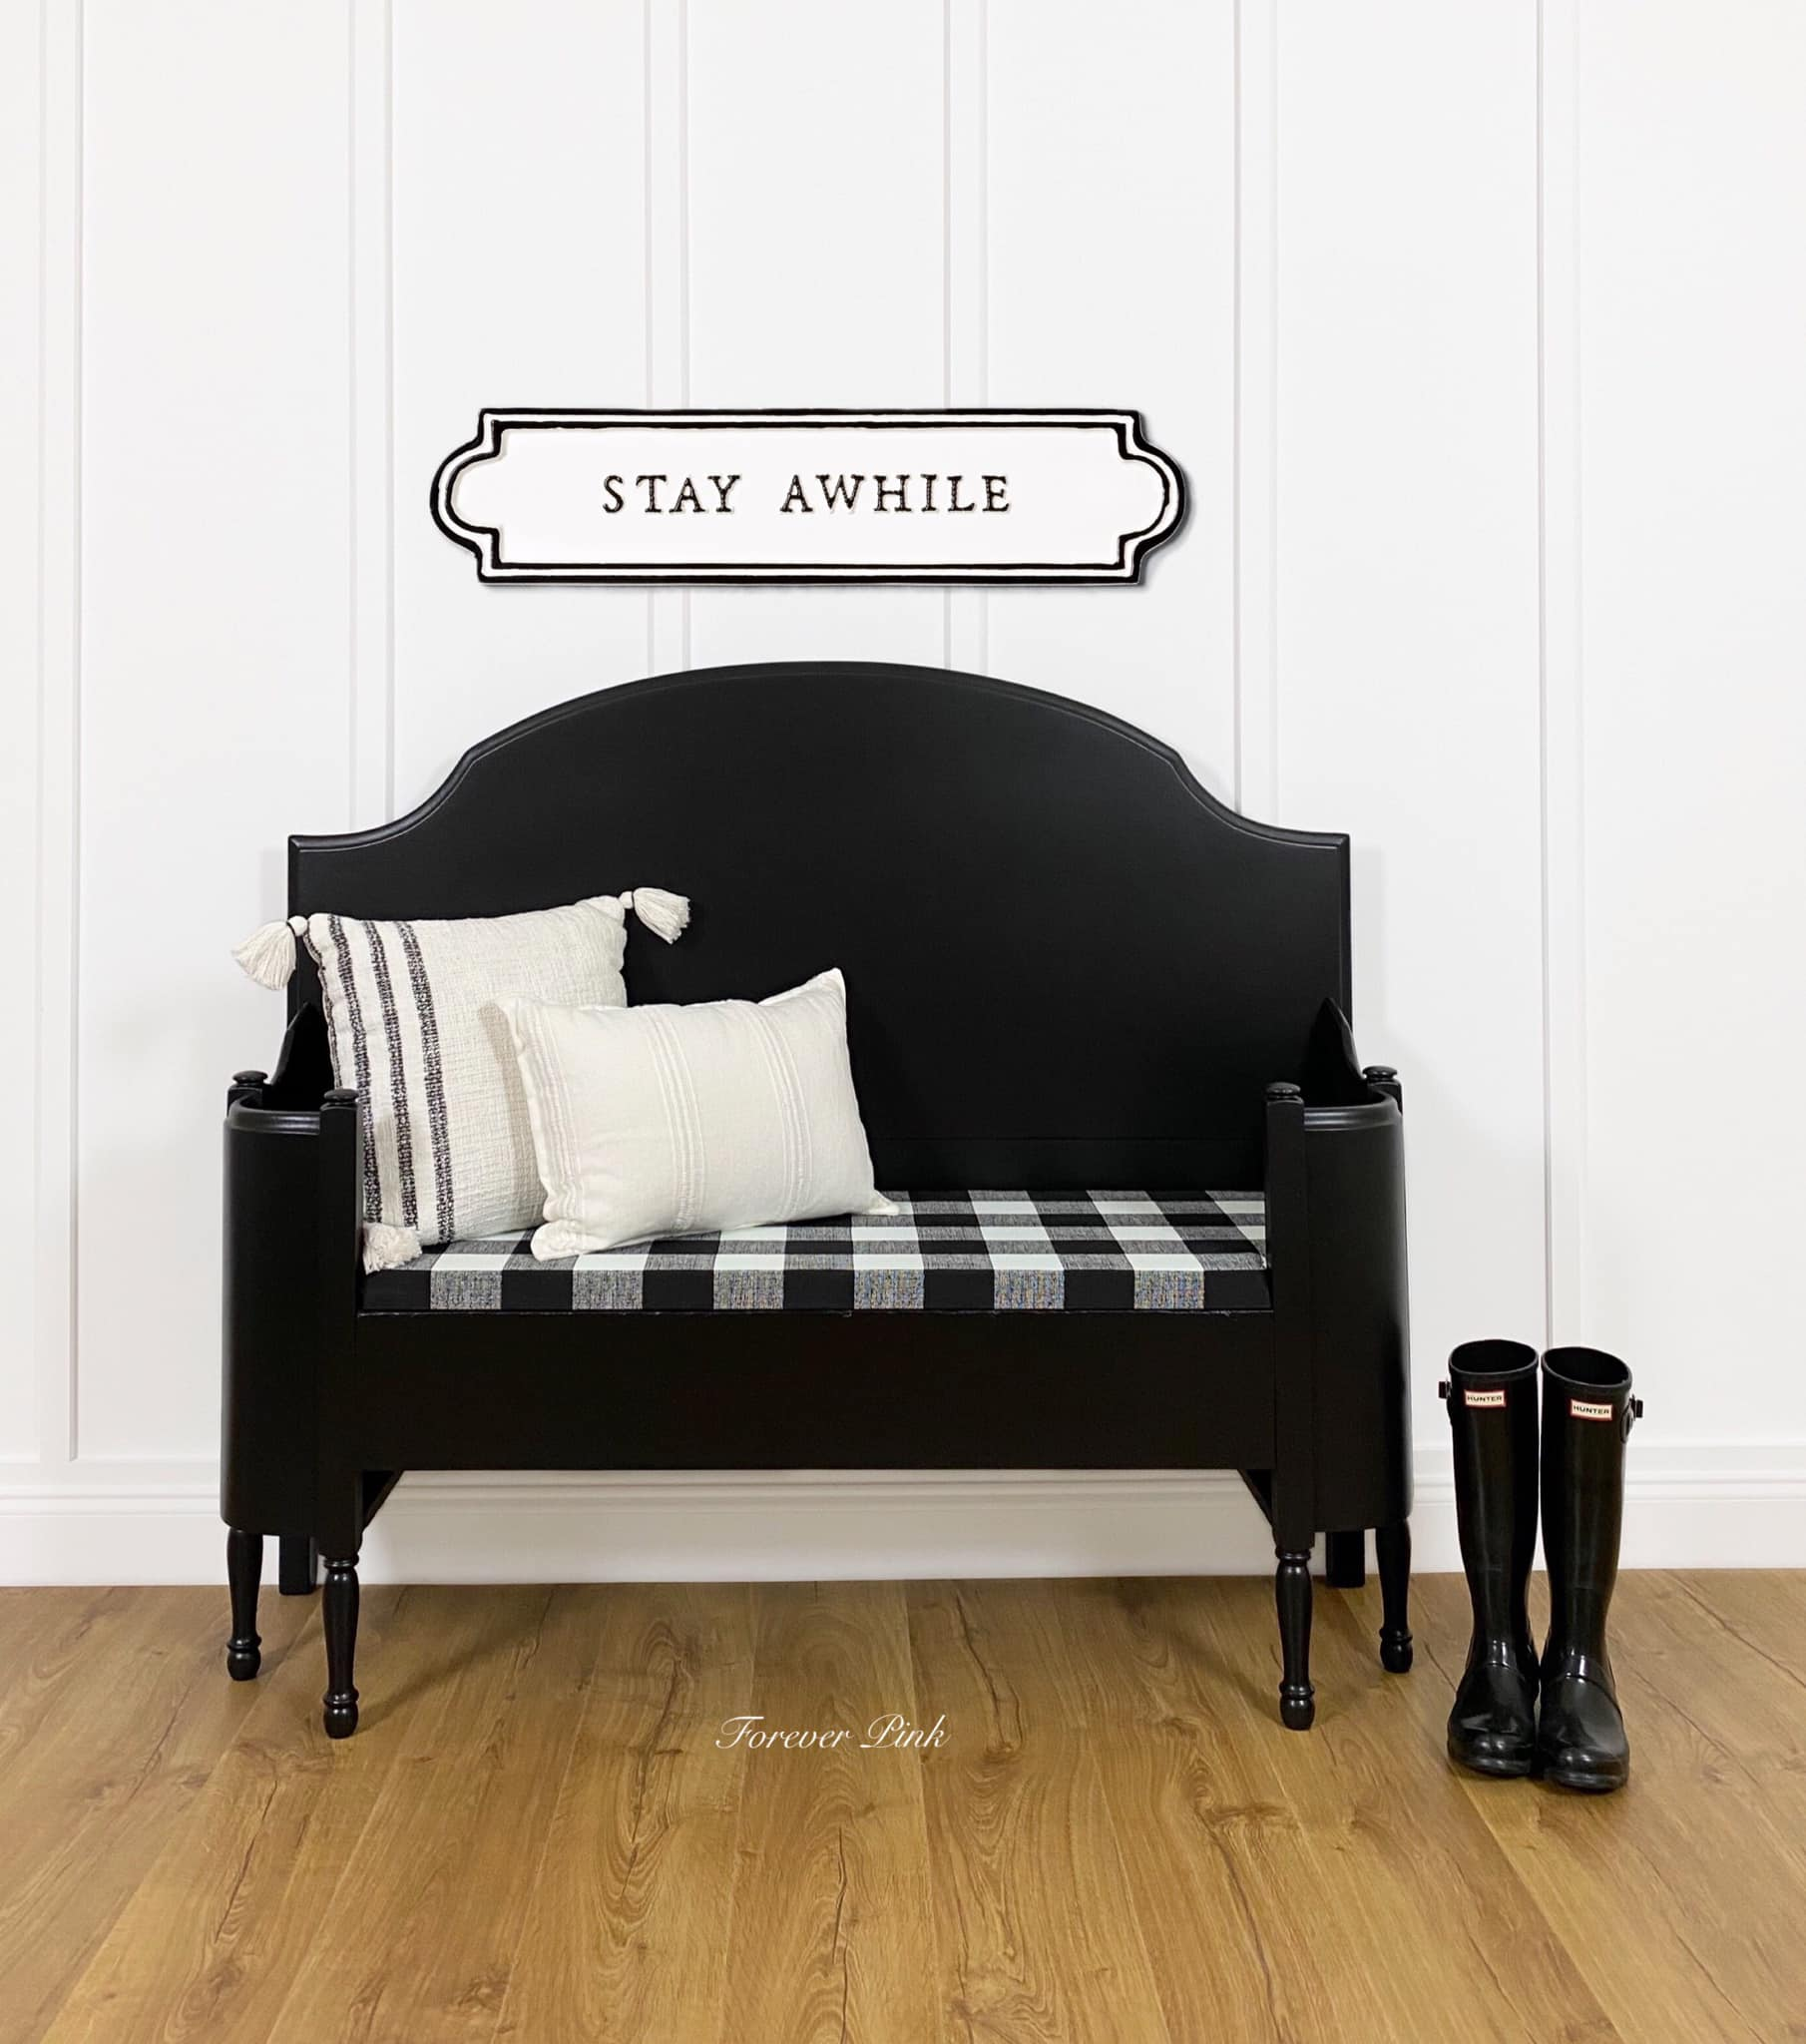 Top 10 paint colors from Country Chic Paint - pure black color called Liquorice - bed frame upcycled into bench with buffalo plaid upholstery and black hunter boots